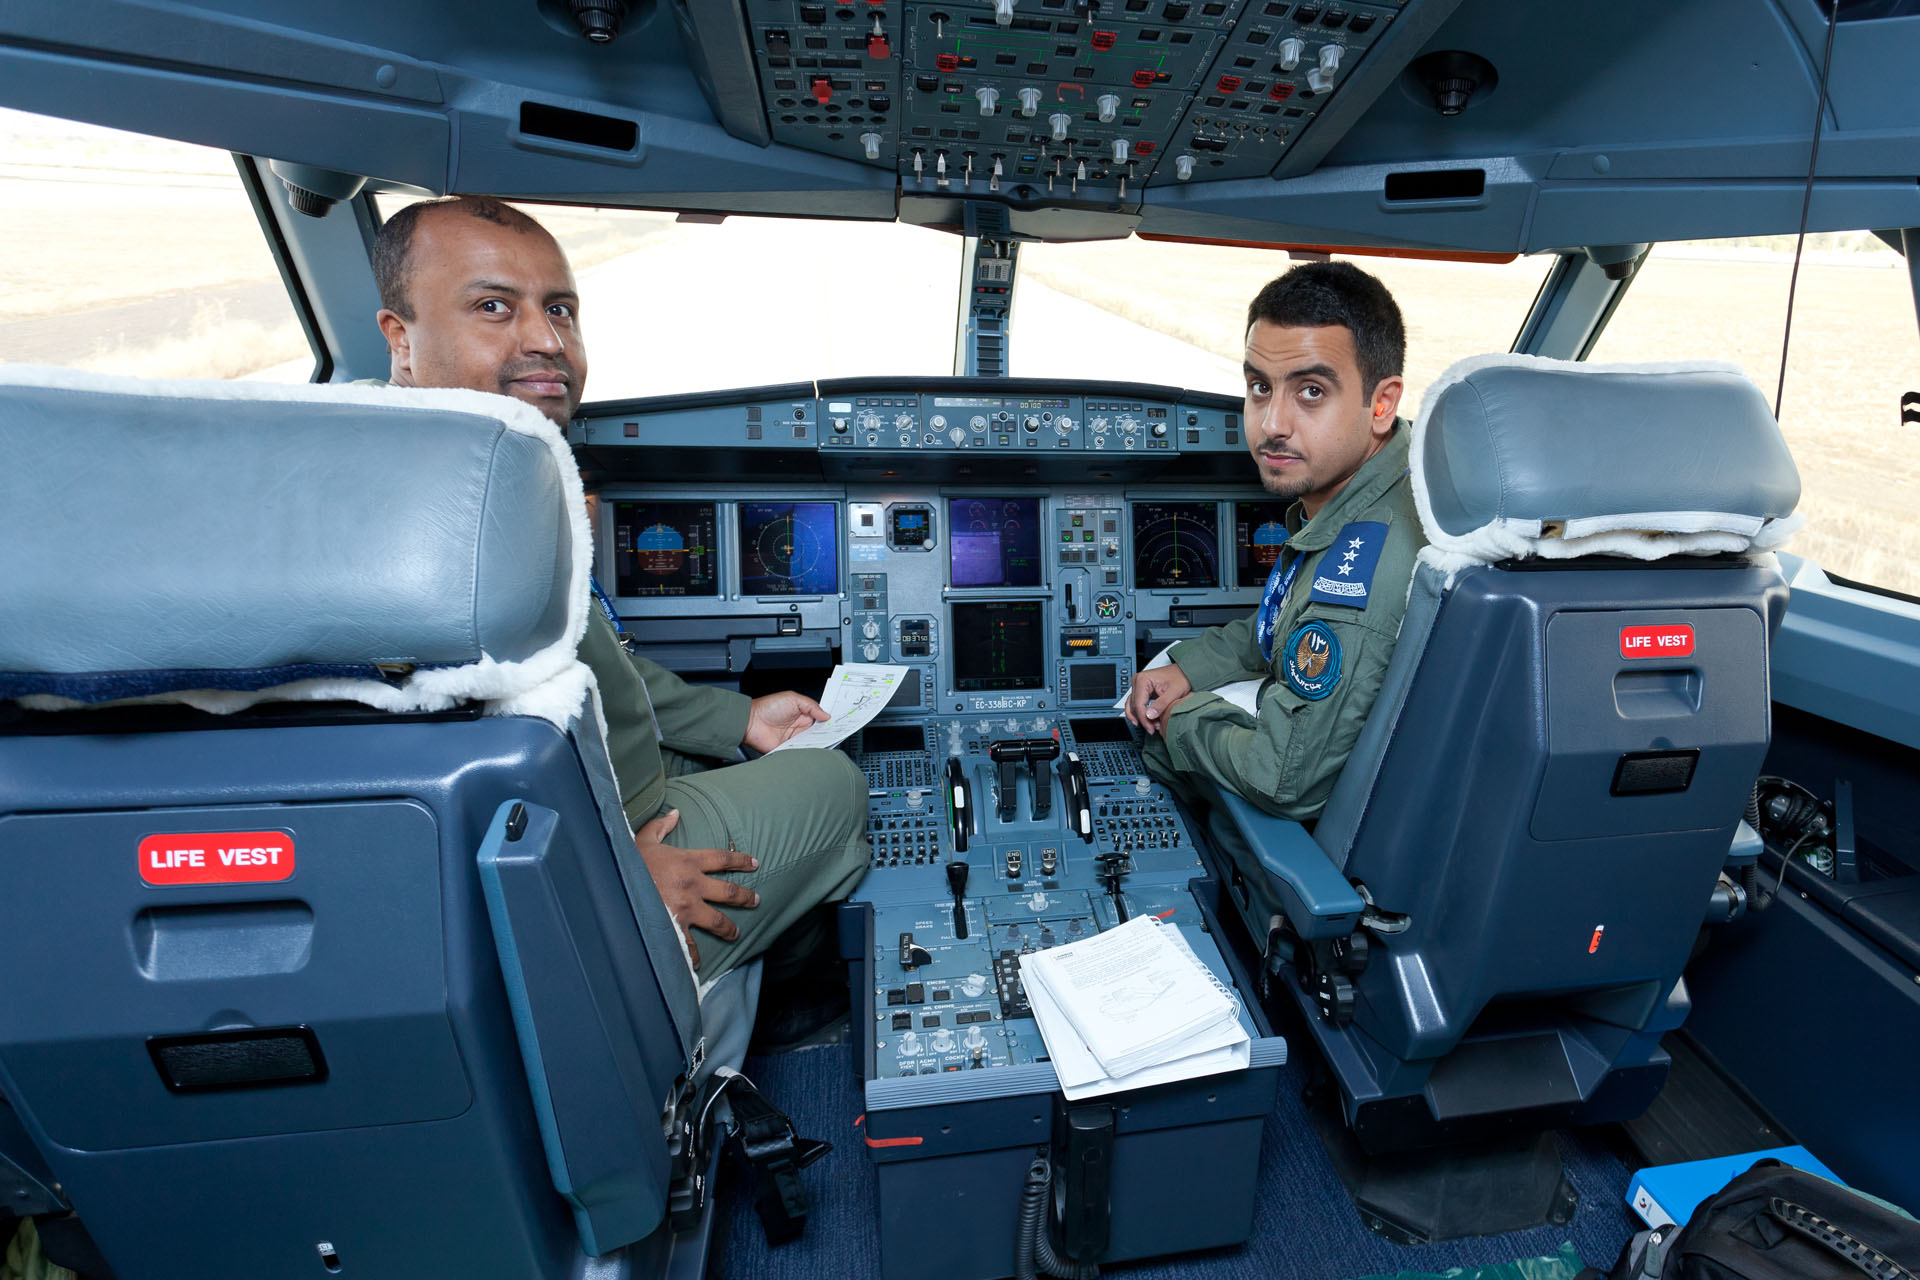 RSAF begins A330 MRTT flight training